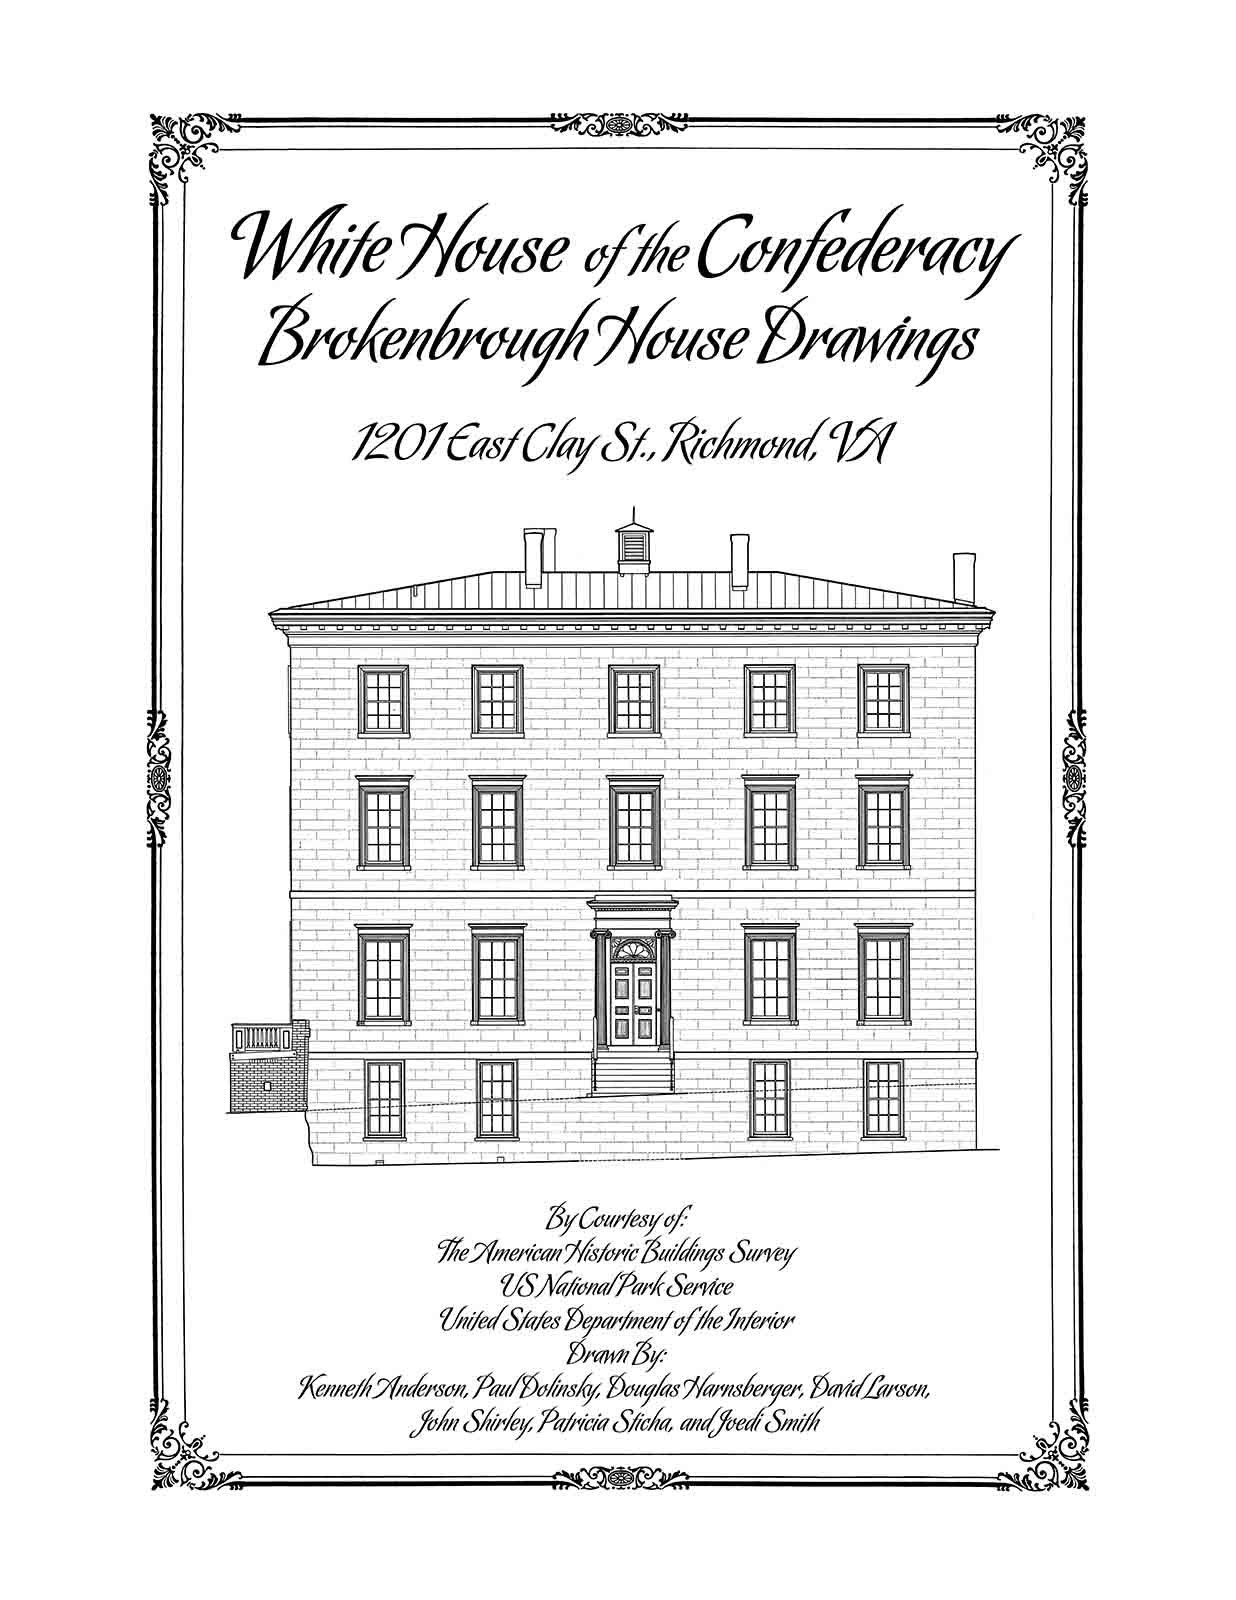 White House of the Confederacy, Brokenbrough House Drawings ... on architect house planning, architect advertising, architect furniture, 3d home architect plans, architect community plans, architect blueprints, architect education, architect landscape, architect construction, architect tools, architect roof plans, architect house sketches, architect software, architect design, architect house ideas, architect hotels, architect wallpaper, architect engineers, architect drafting, architect office,